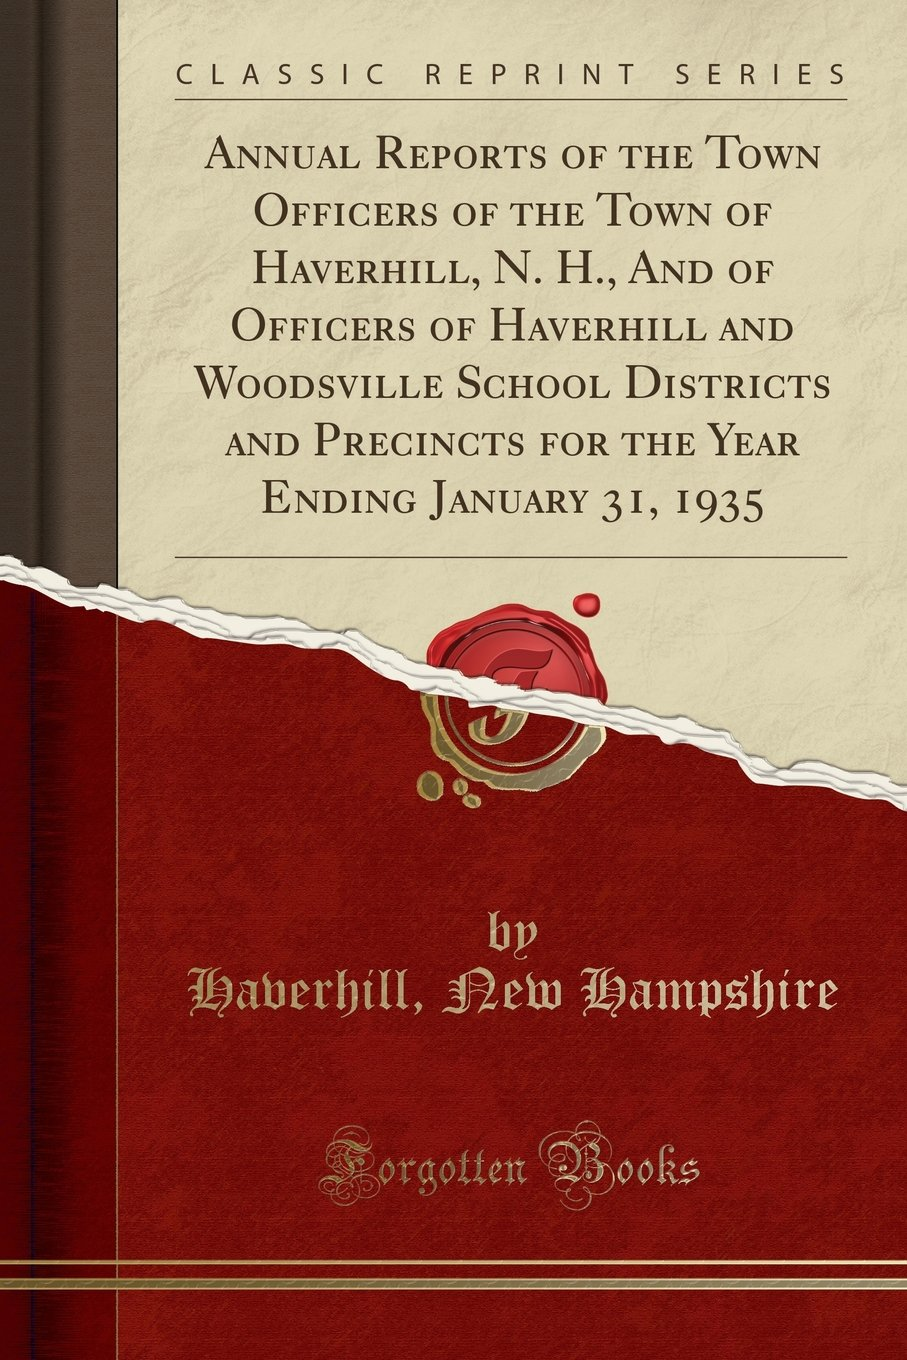 Download Annual Reports of the Town Officers of the Town of Haverhill, N. H., And of Officers of Haverhill and Woodsville School Districts and Precincts for the Year Ending January 31, 1935 (Classic Reprint) pdf